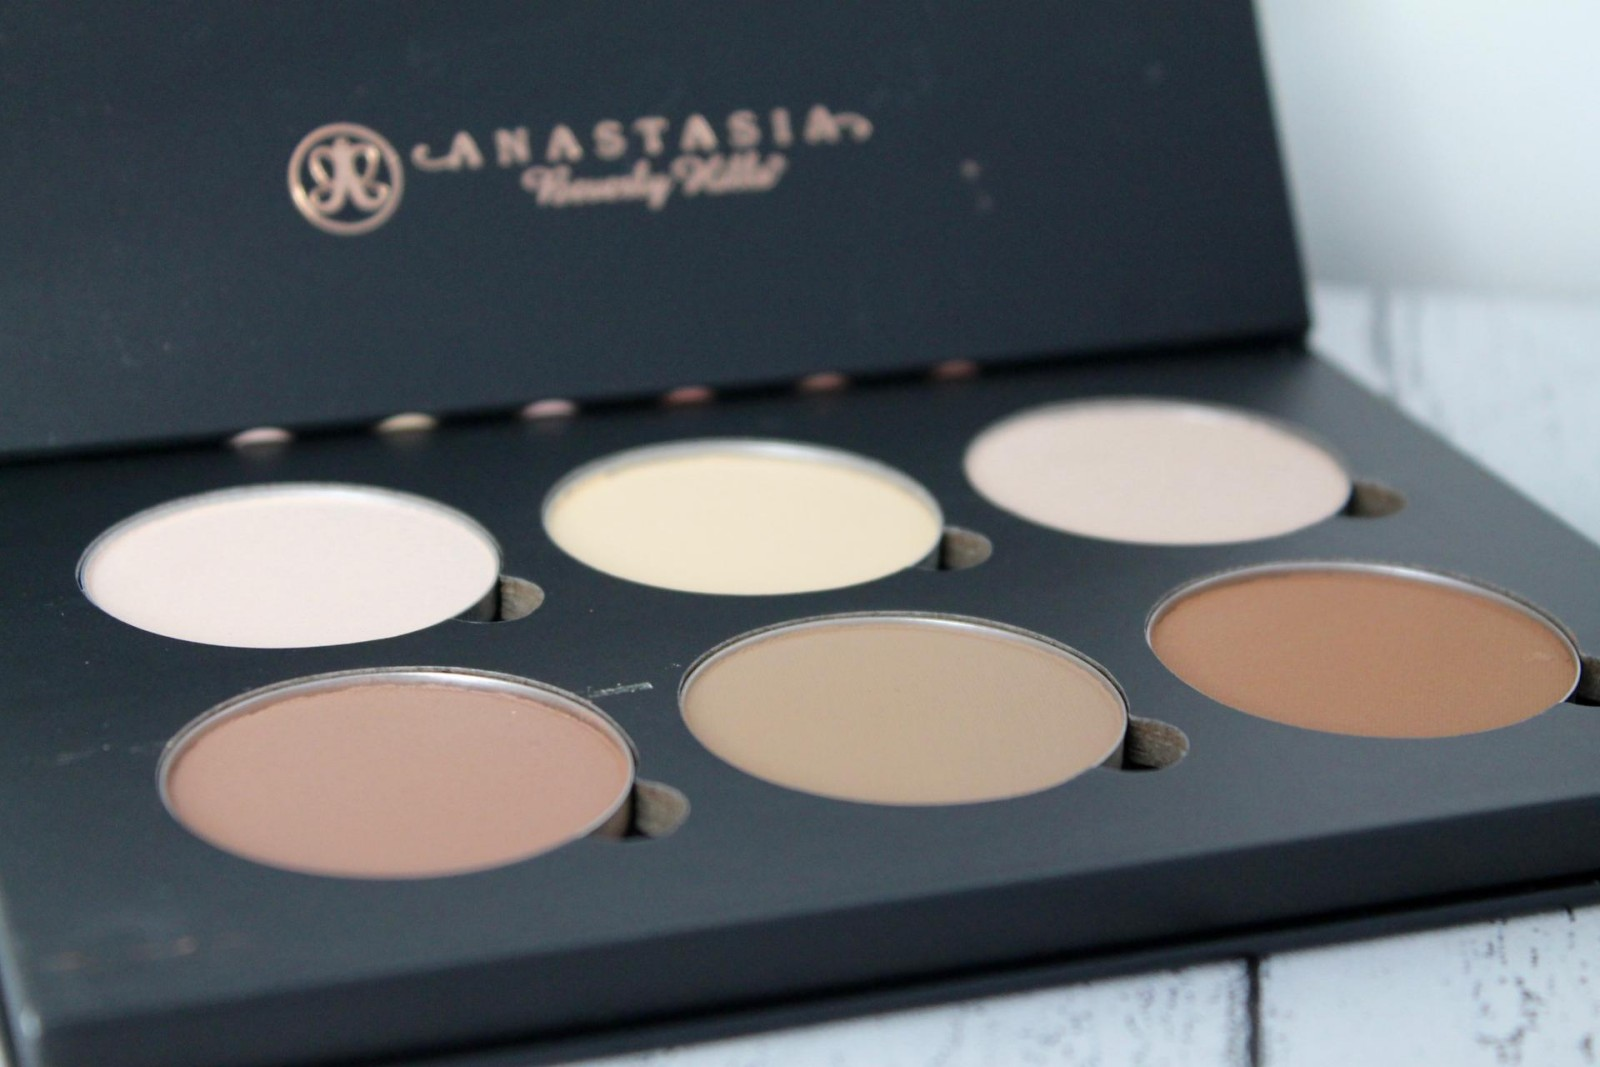 Anastasia Beverly Hills Review 6